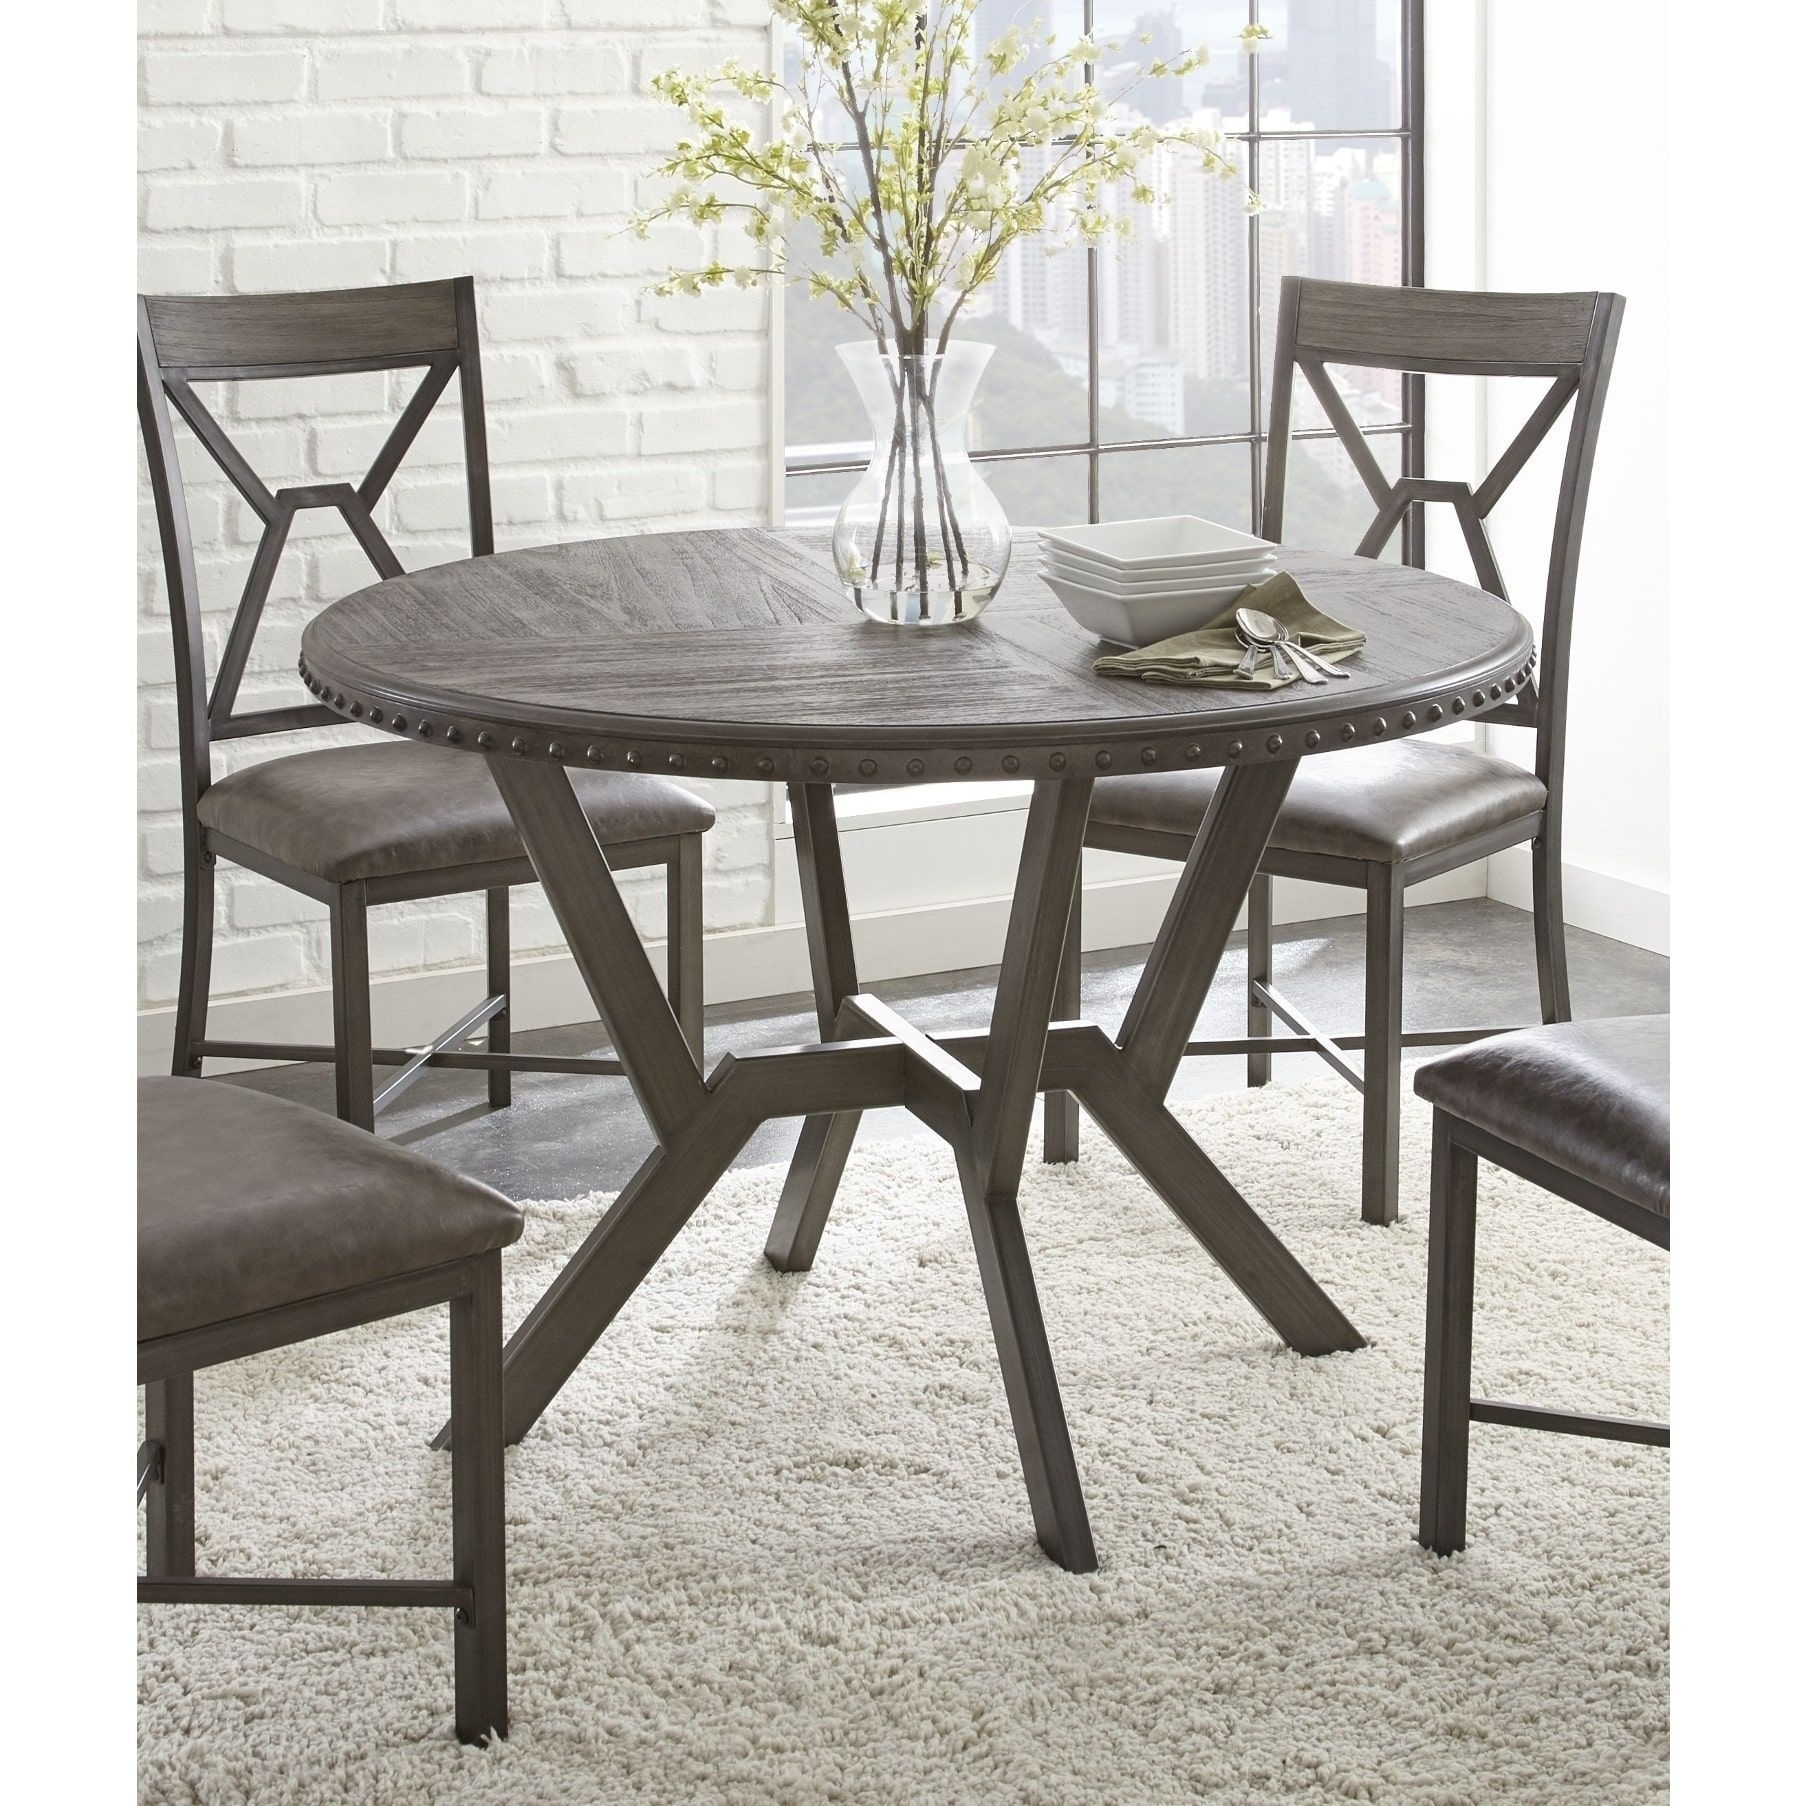 Weston Home Farmhouse Dining Chair With Cross Back (Set Of Regarding 2018 Carly 3 Piece Triangle Dining Sets (Image 18 of 20)